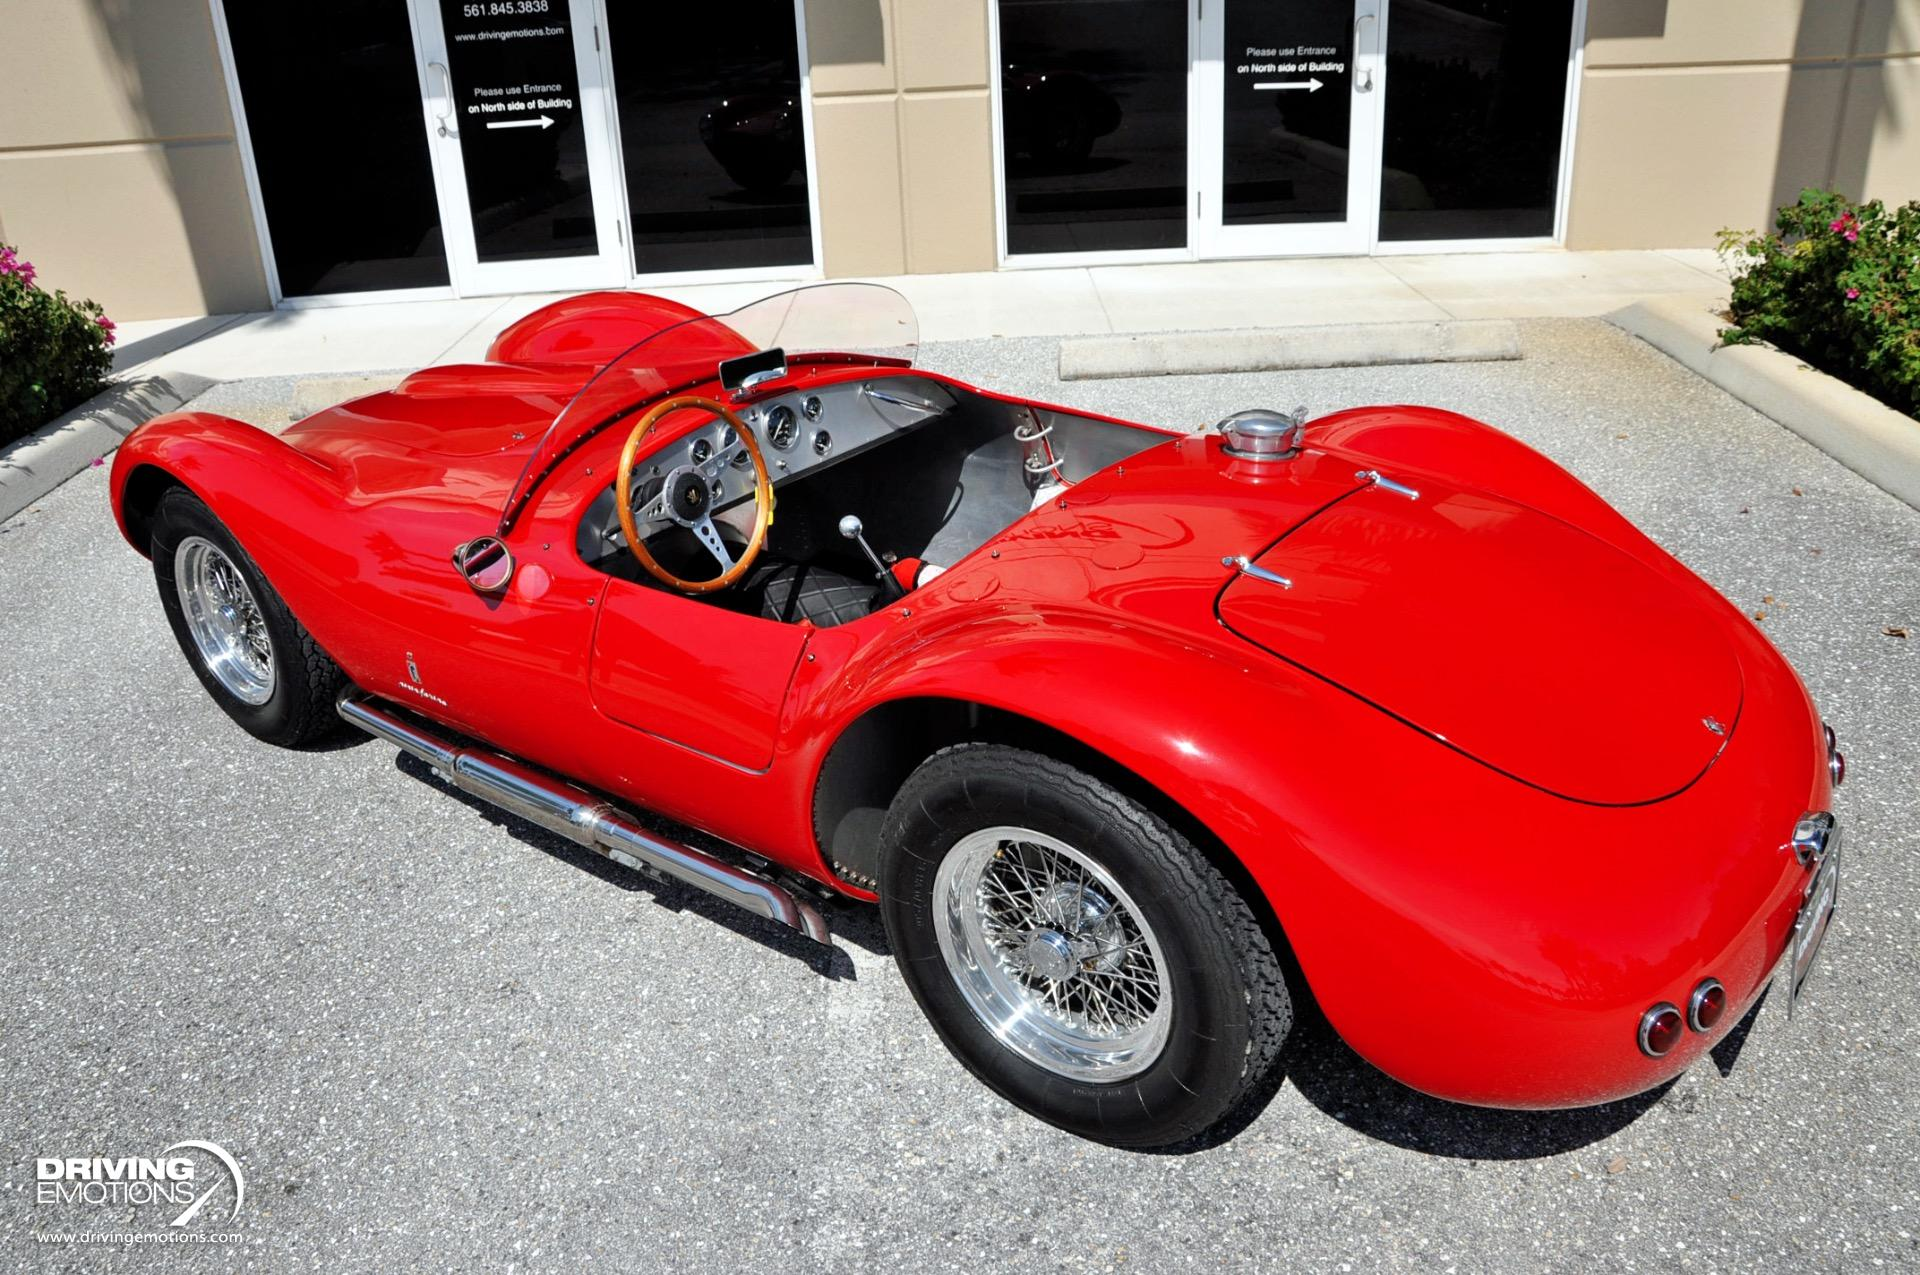 Used 1954 Maserati A6GCS Barchetta Recreation A6GCS Barchetta Roadster Replica | Lake Park, FL